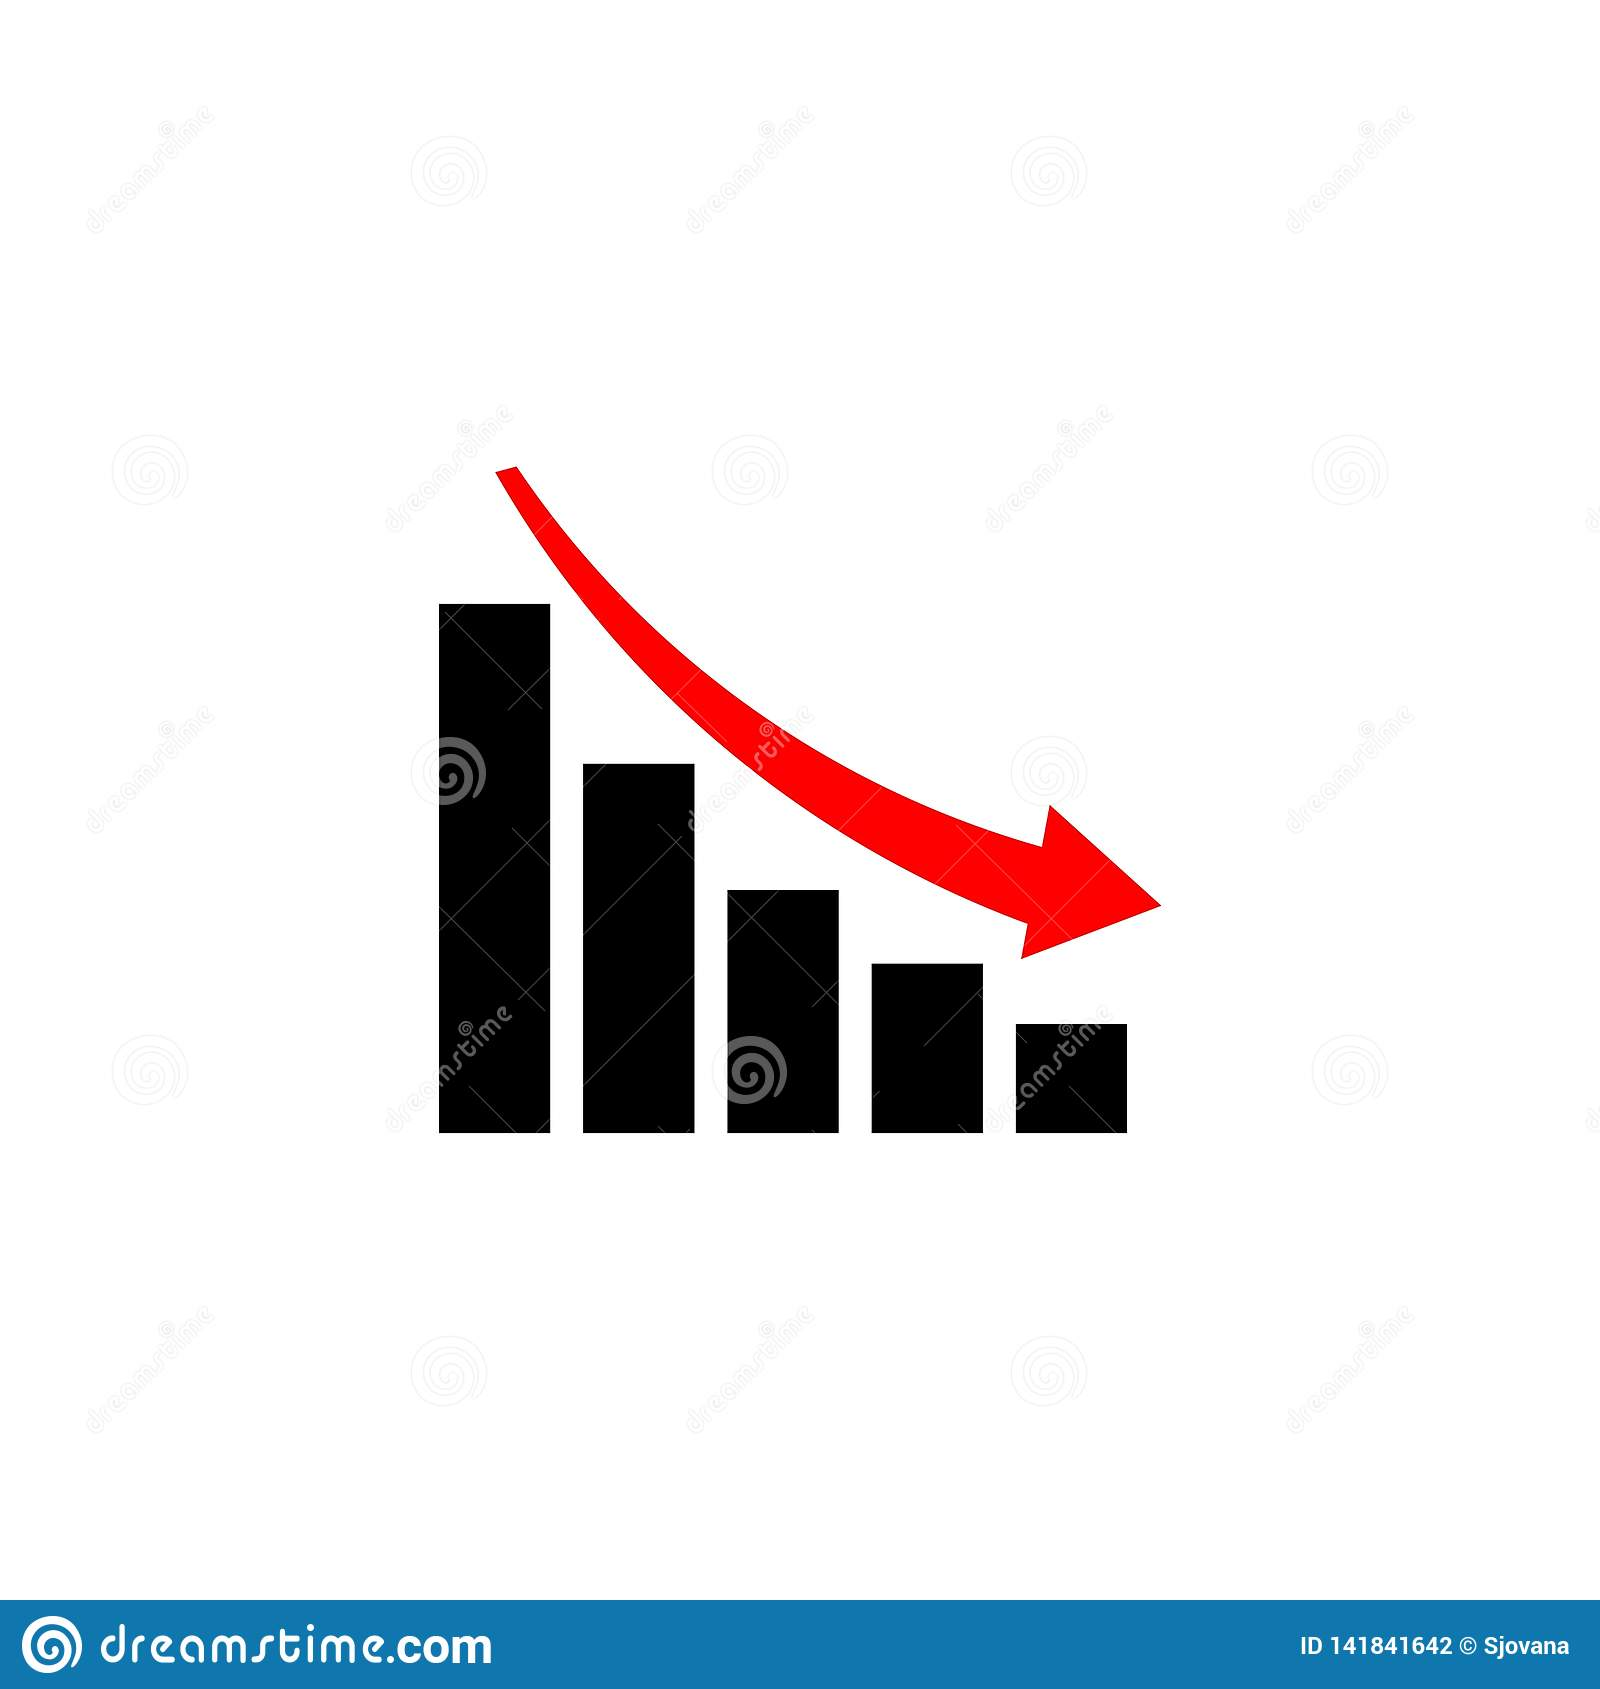 Decline Graph, Chart with bars declining, Chart icon